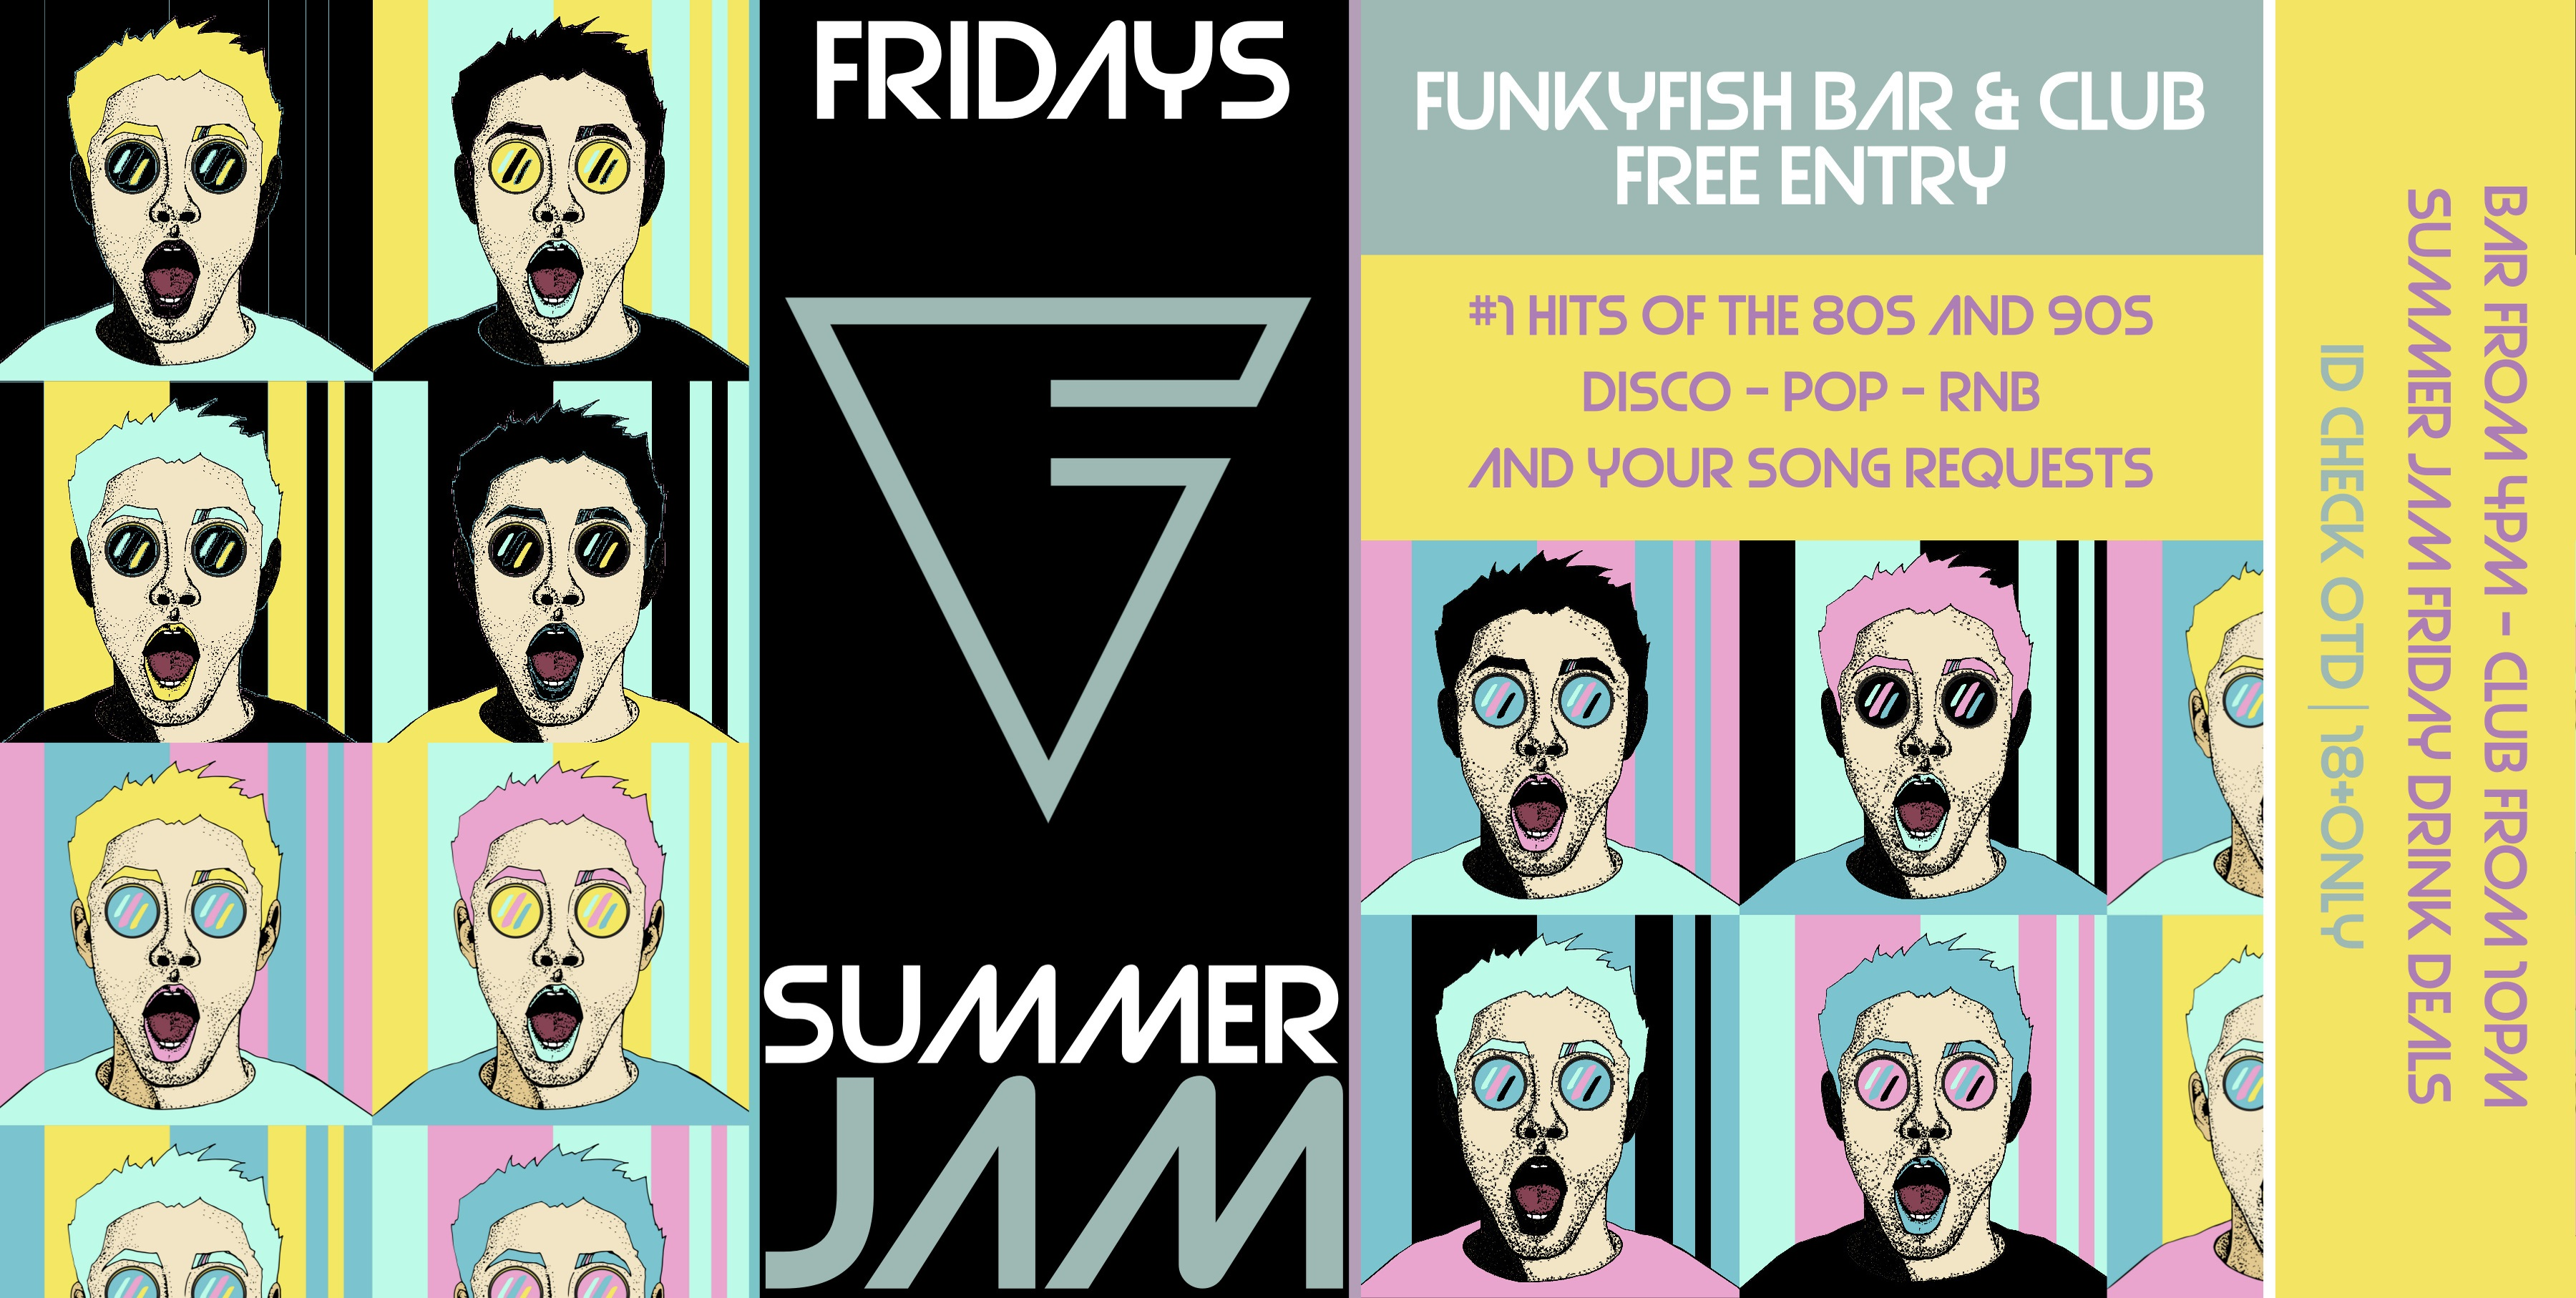 EVERY FRIDAY - SUMMER JAM - FREE ENTRY